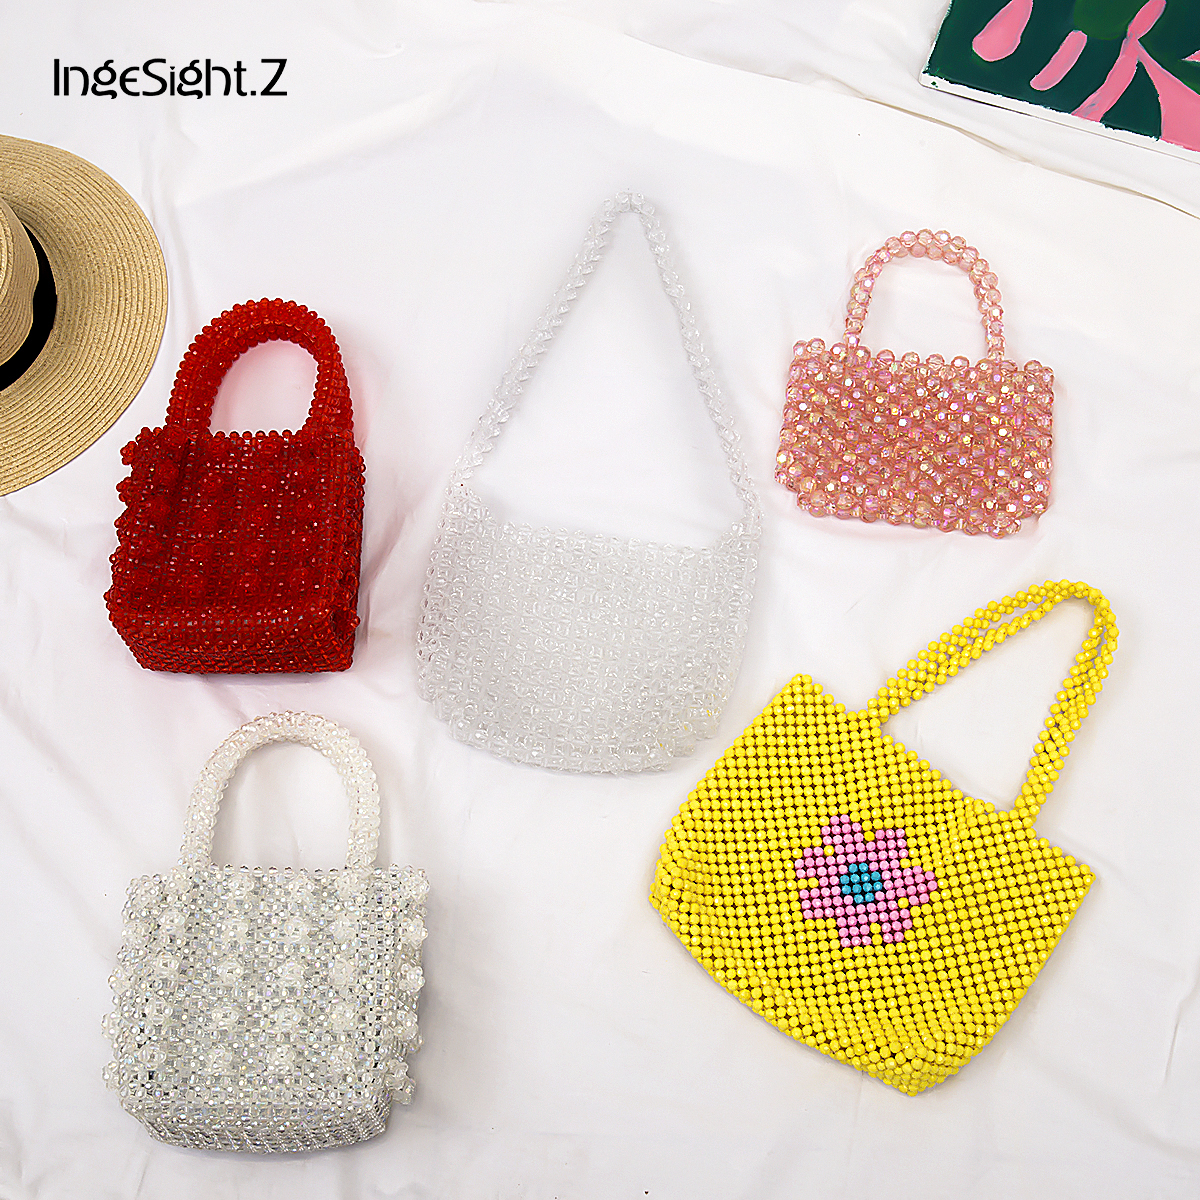 IngeSight.Z Luxury Handmade Pearl Bags Elegant Acrylic Beaded Handbags Mini Cross Body Bags For Women Female Wedding Jewelry